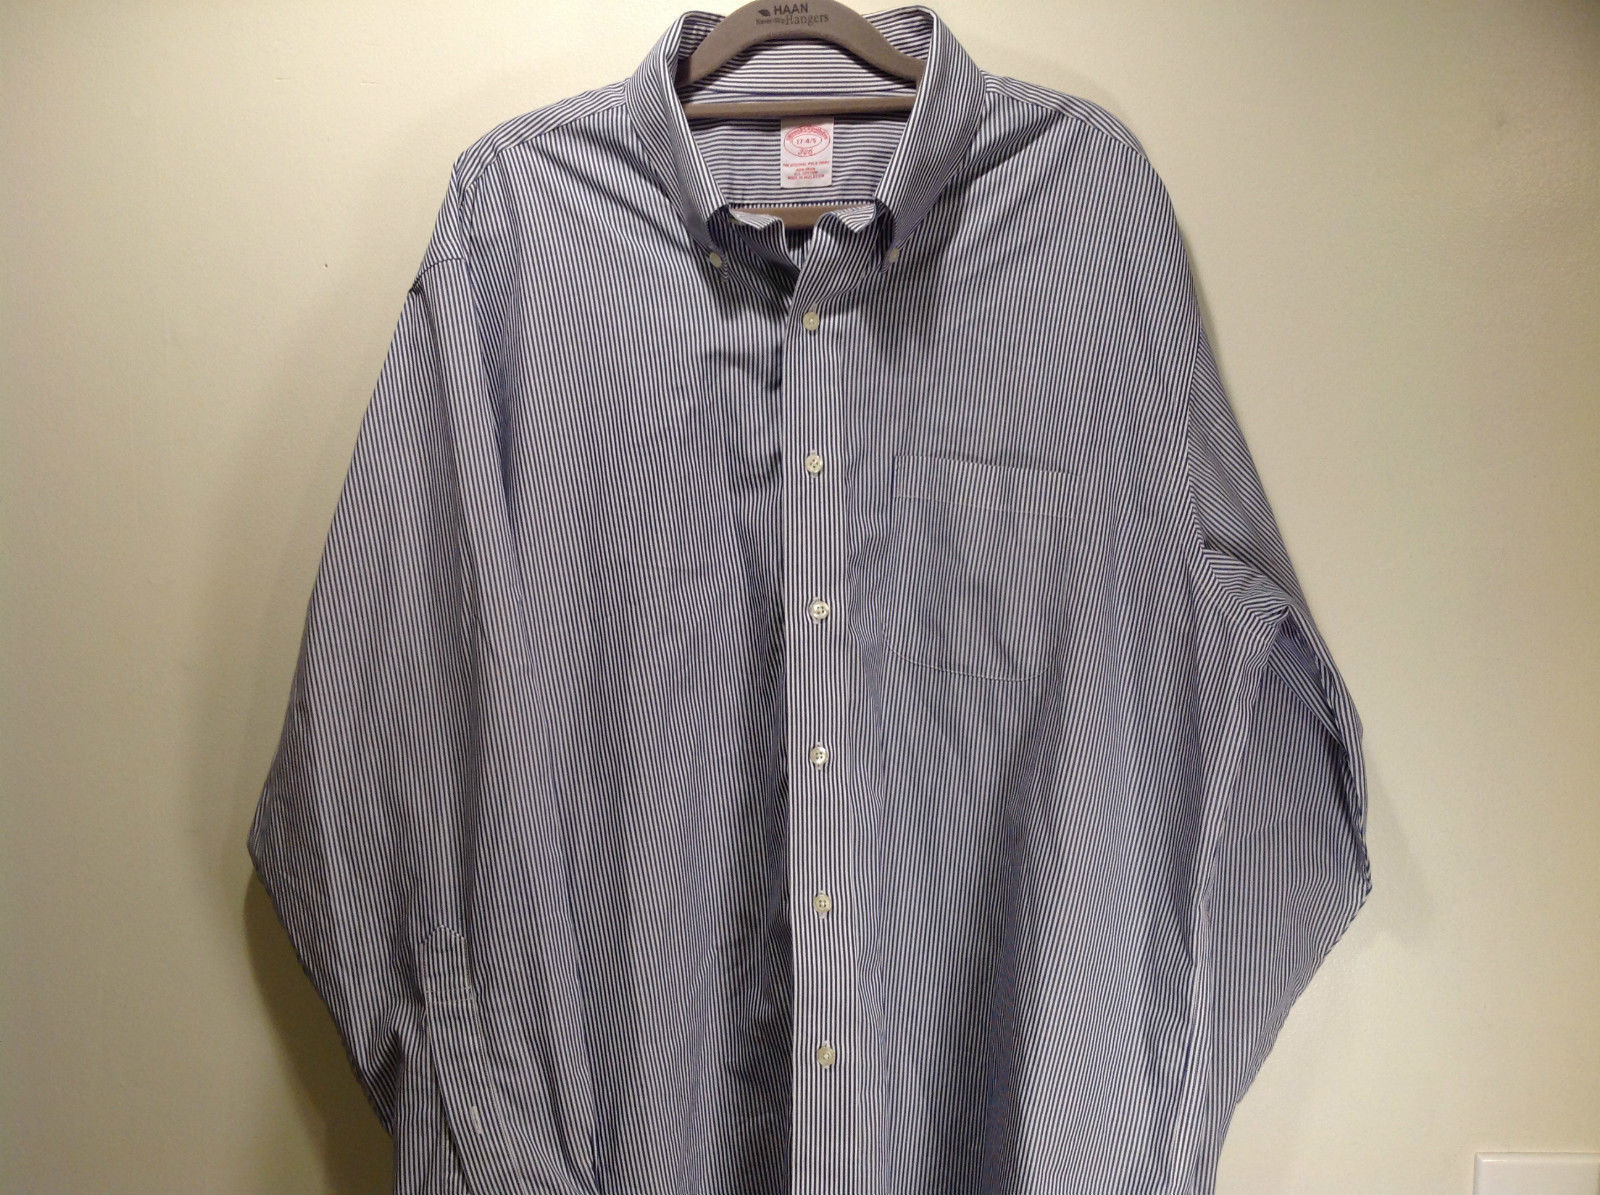 Brooks Brothers Long Sleeve Button Up Striped Dress Shirt All Cotton Size 17-4/5